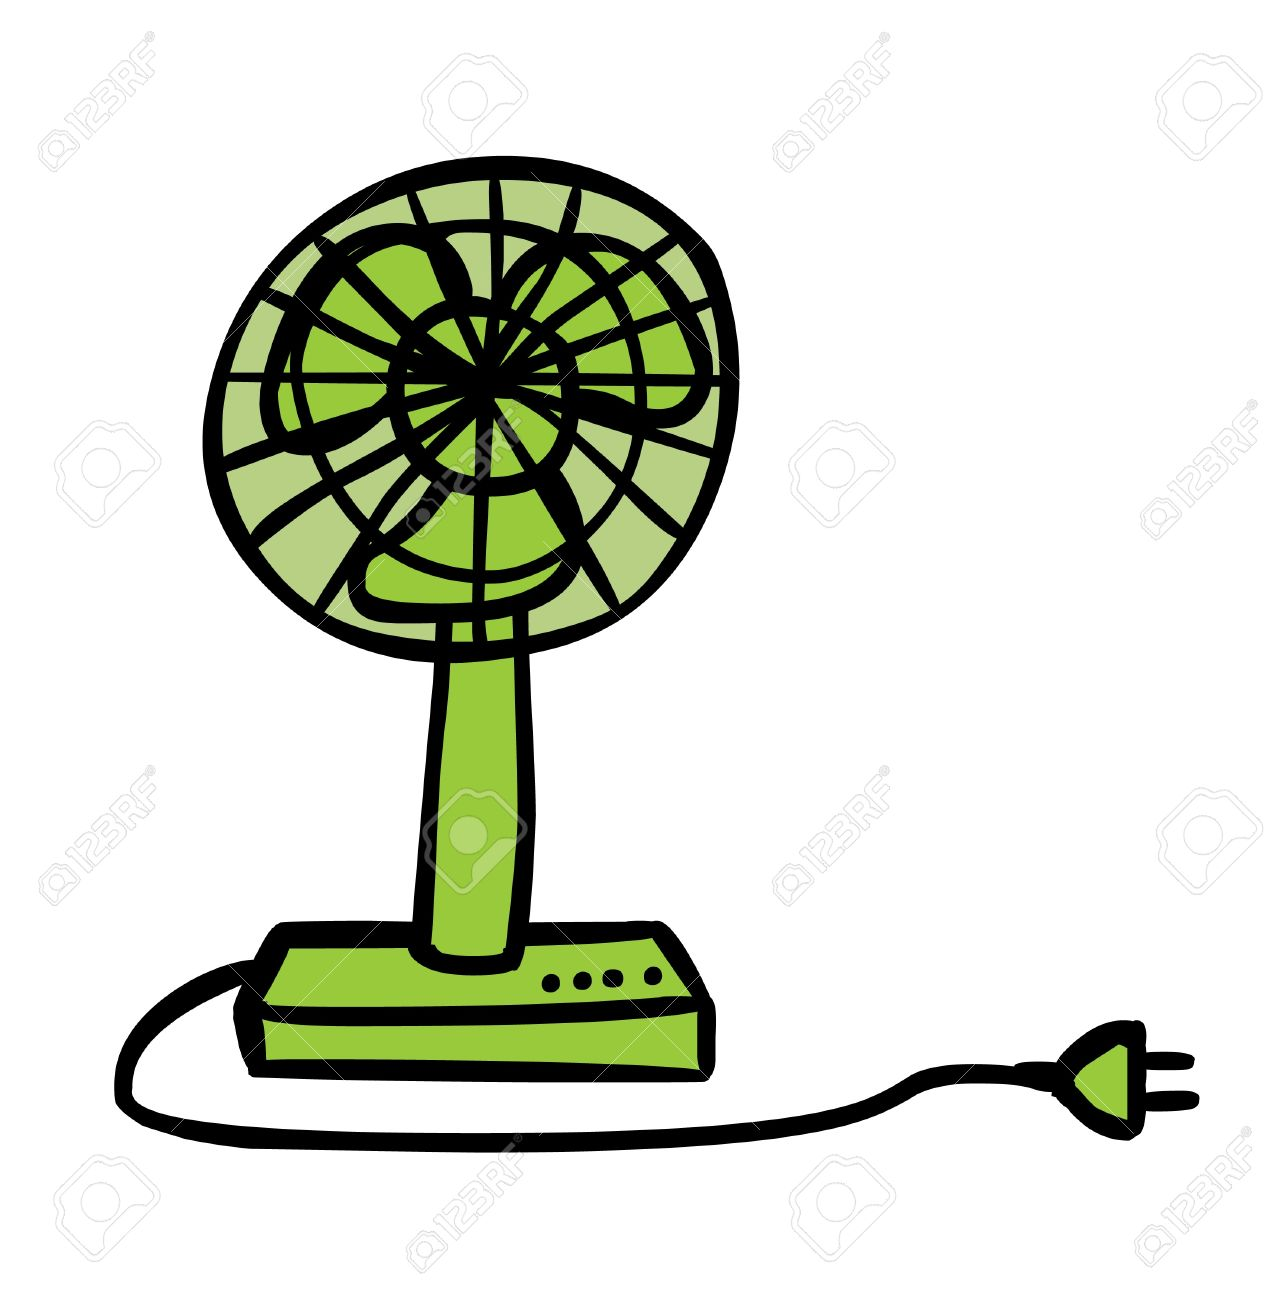 1269x1300 Represent An Electric Green Fan Cartoon Royalty Free Cliparts